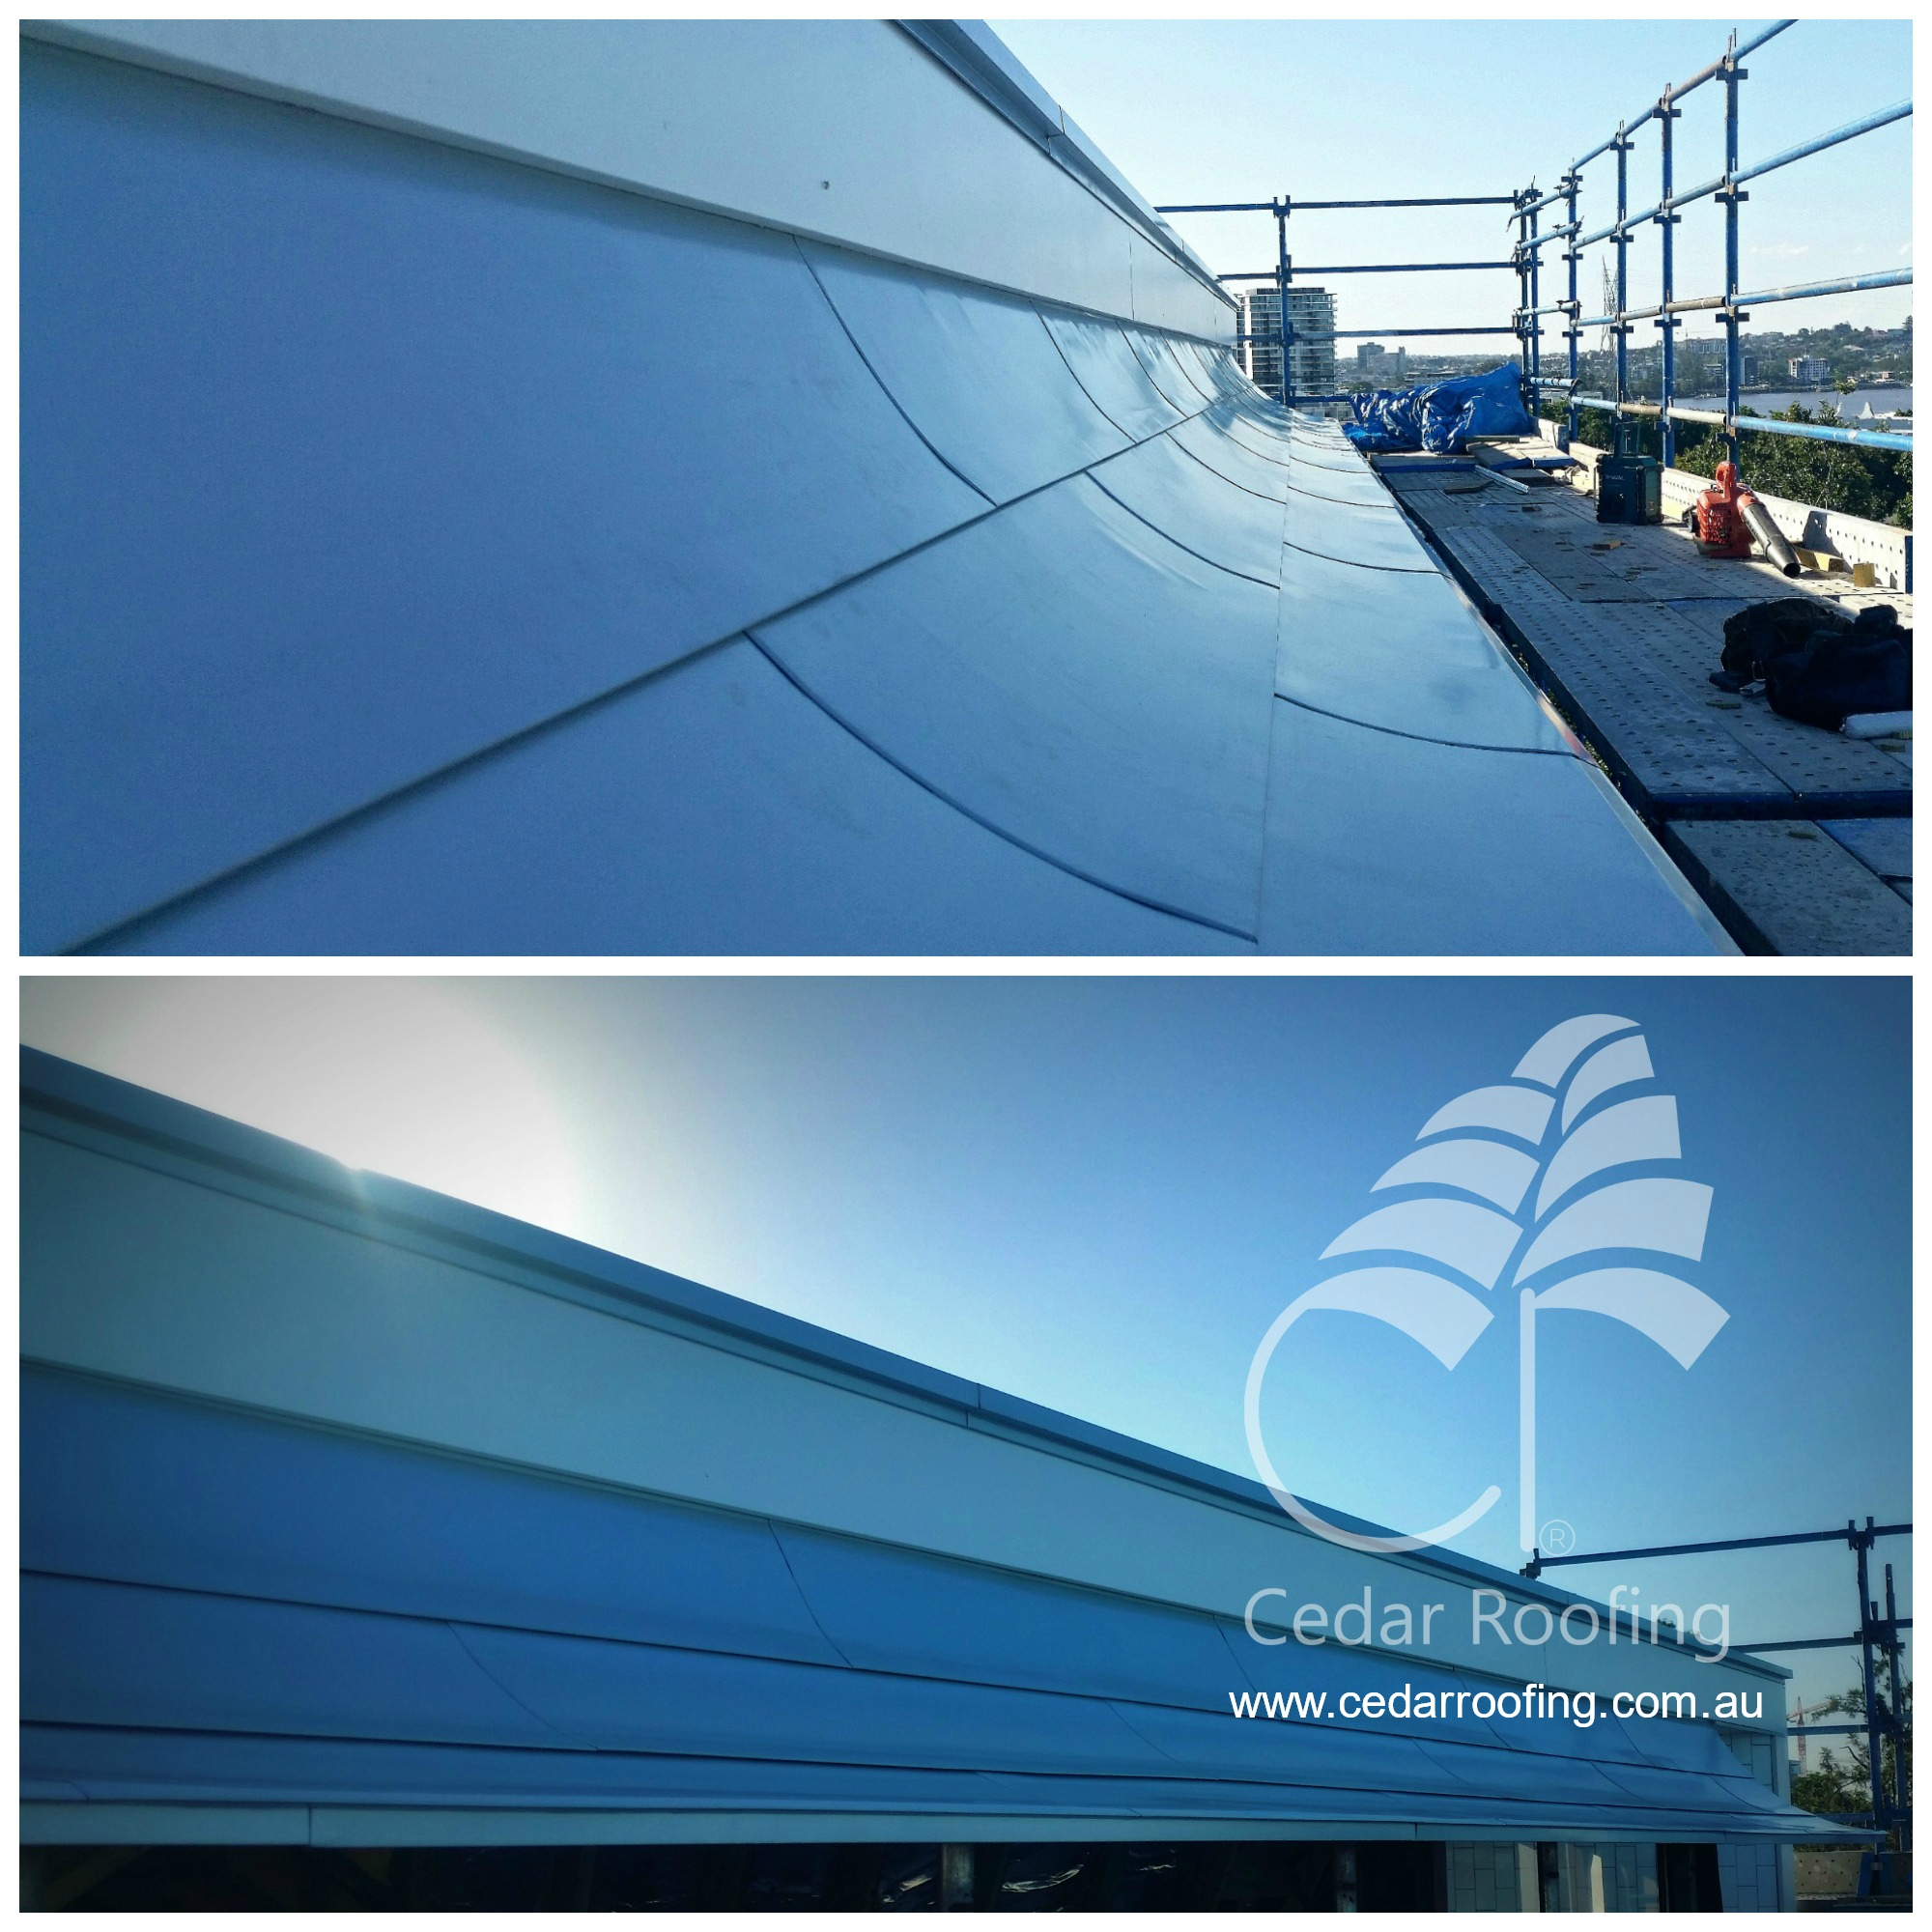 Curved Metal Awning Roof